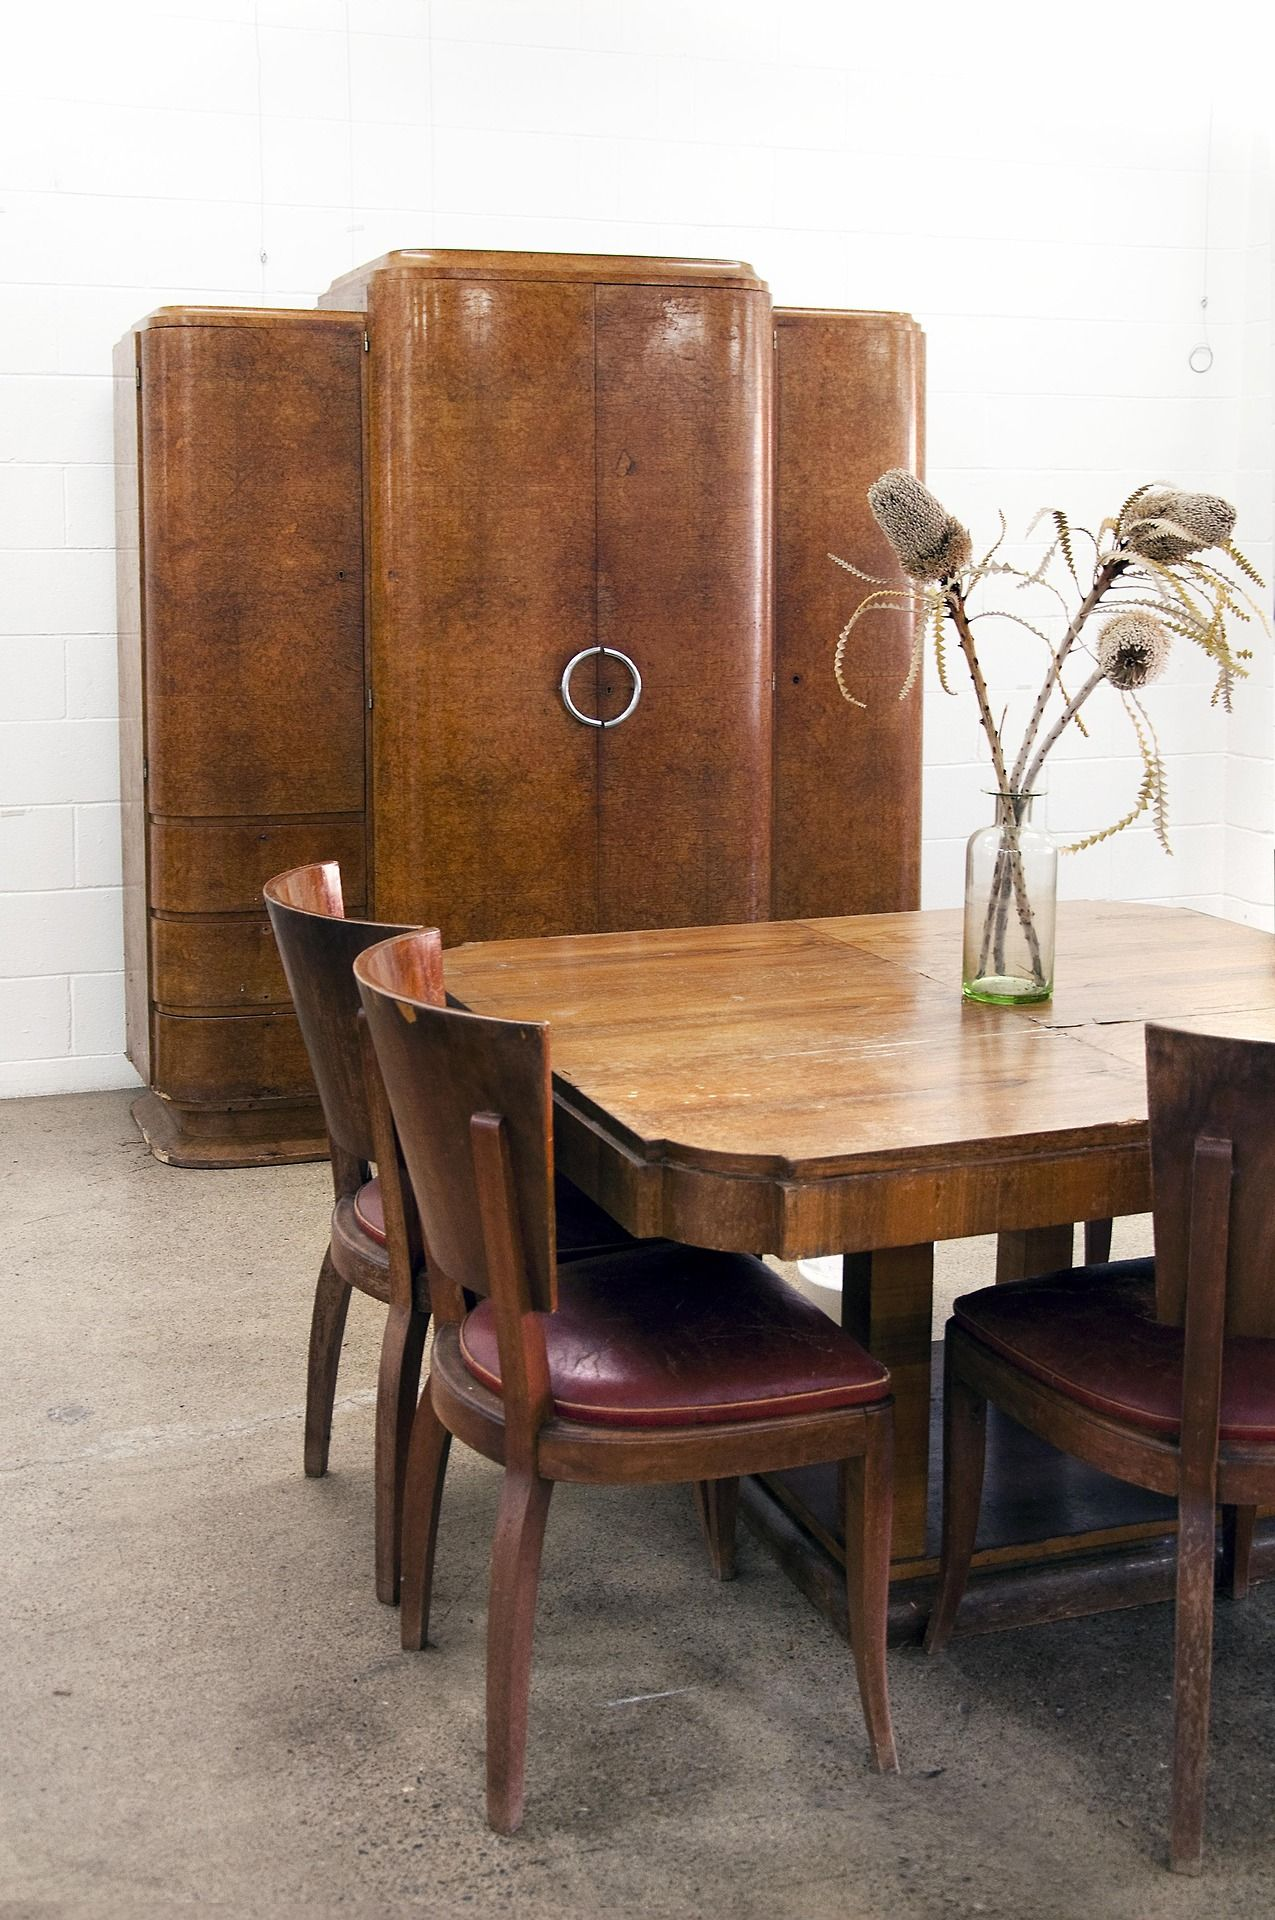 1930s Dining Room Furniture Styles - Dining room ideas